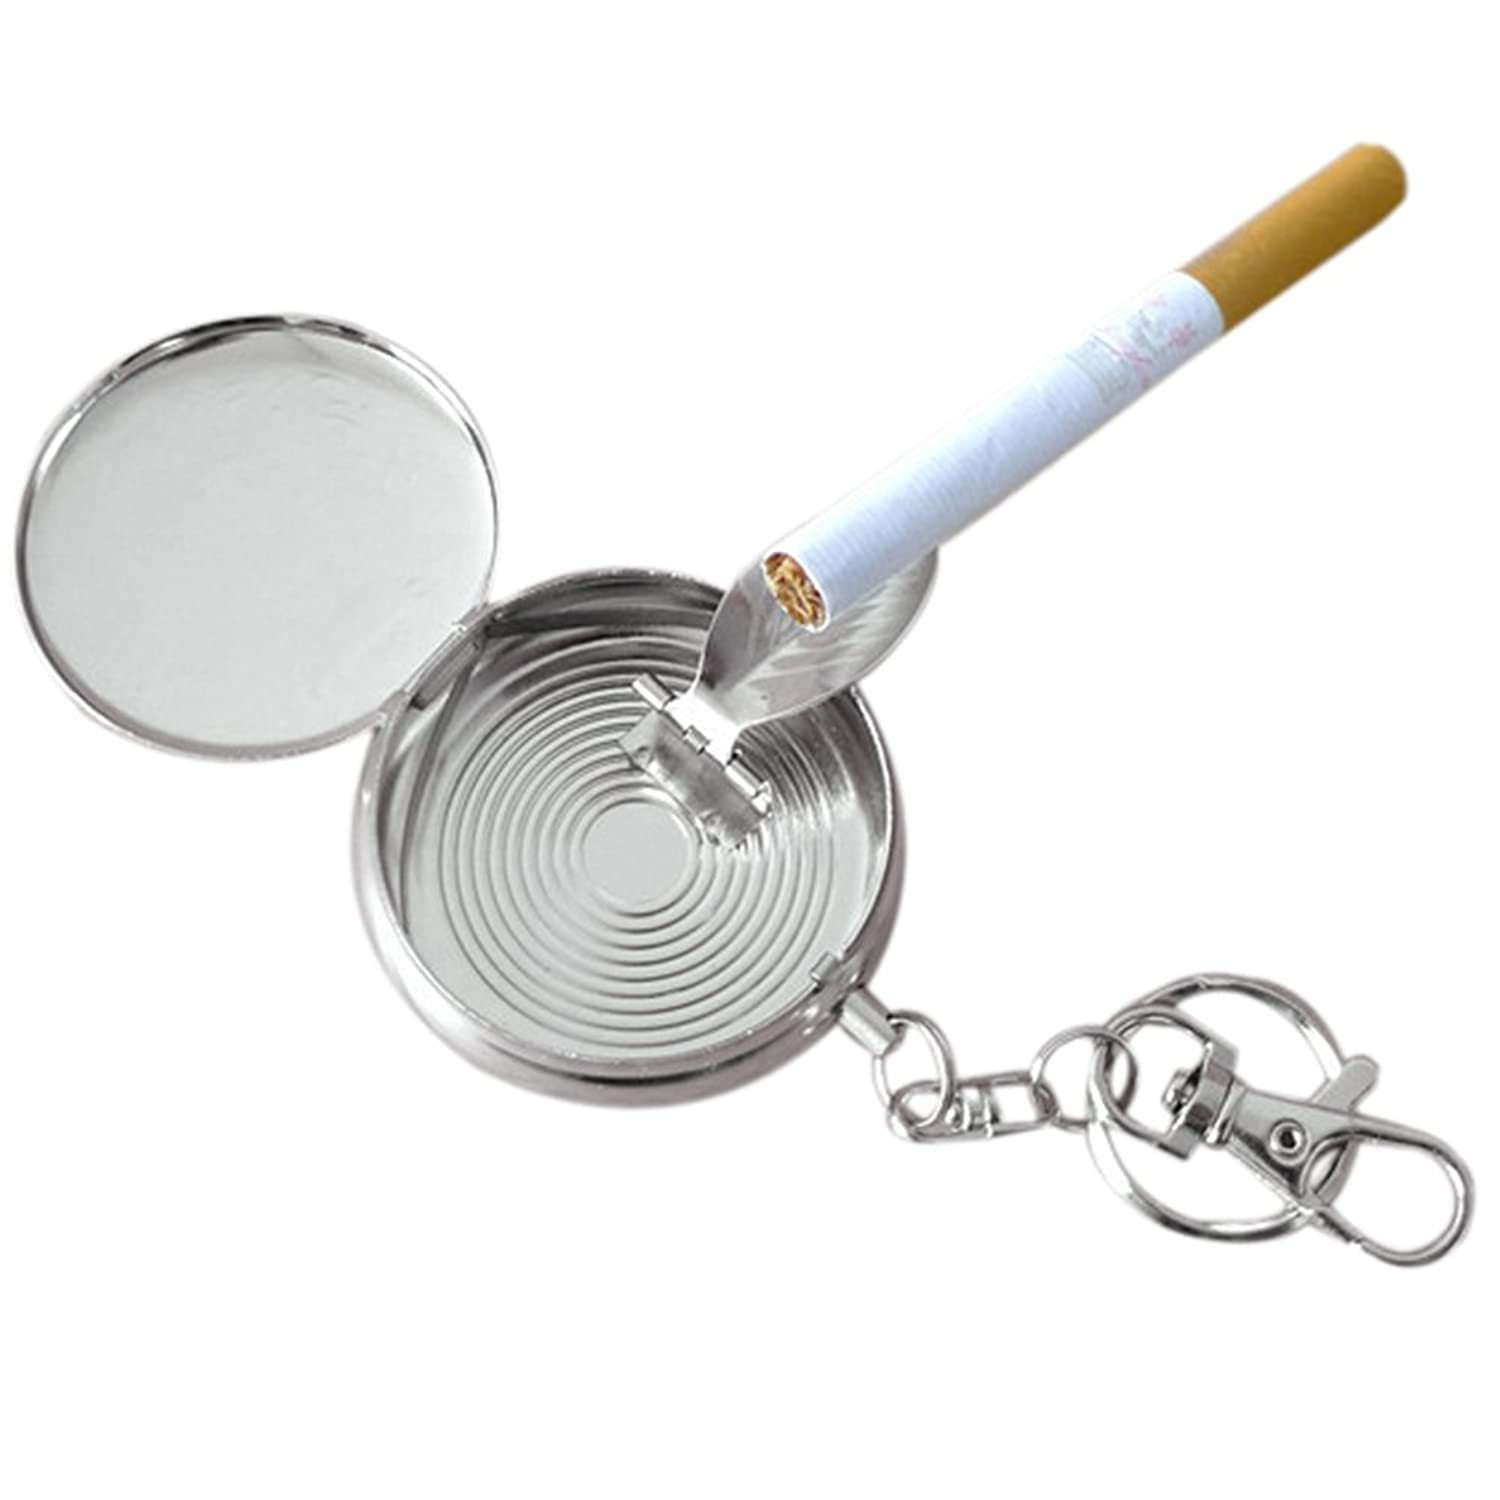 Shuohu Mini Size Stainless Steel Round Cigarette Ashtray with Keychain